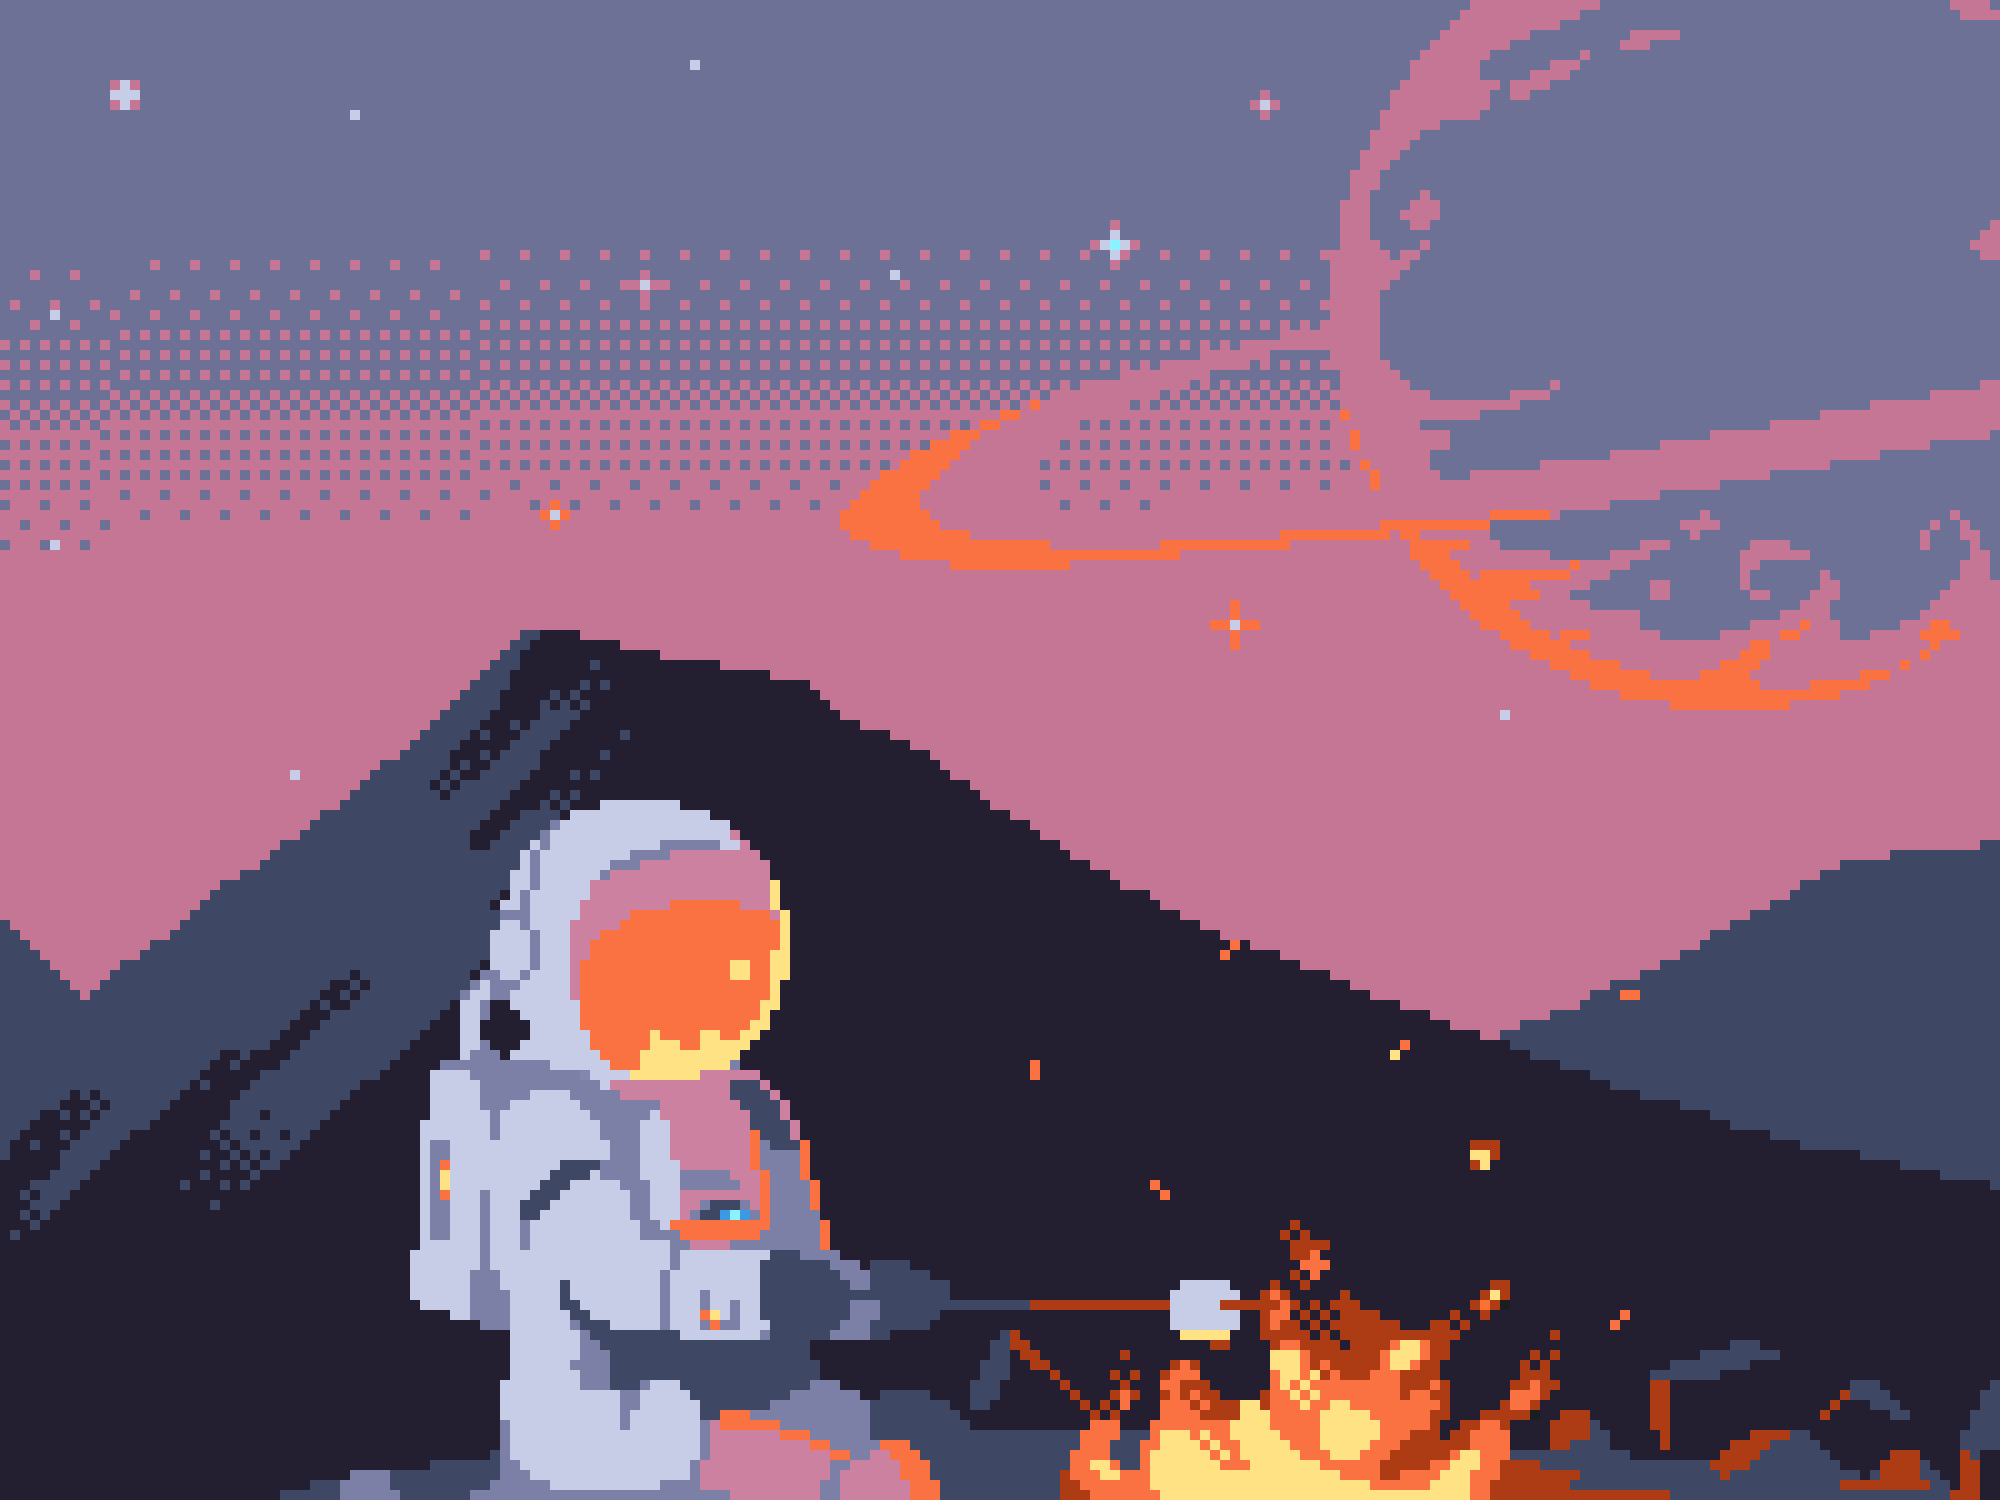 8 Bit HD Wallpapers and Backgrounds